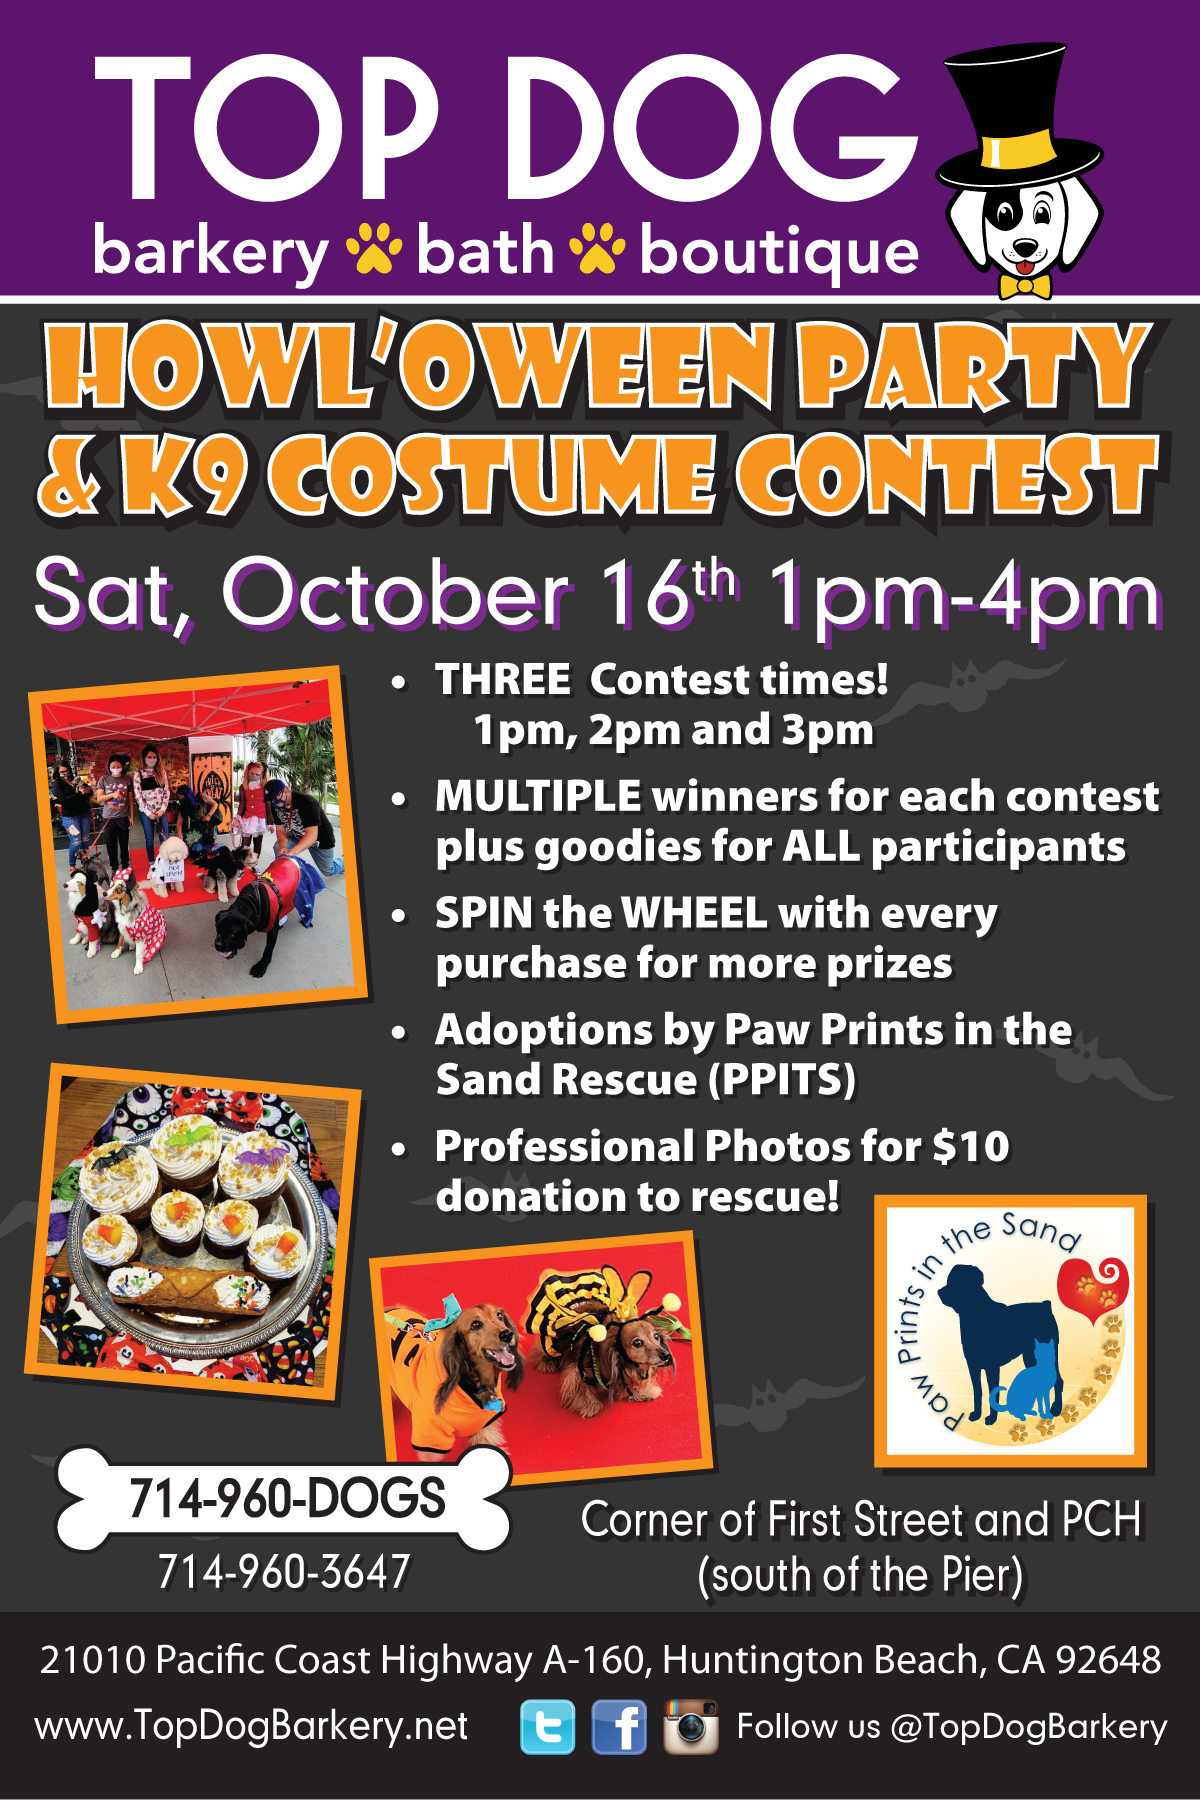 Howl'oween Party & K9 Costume Contest